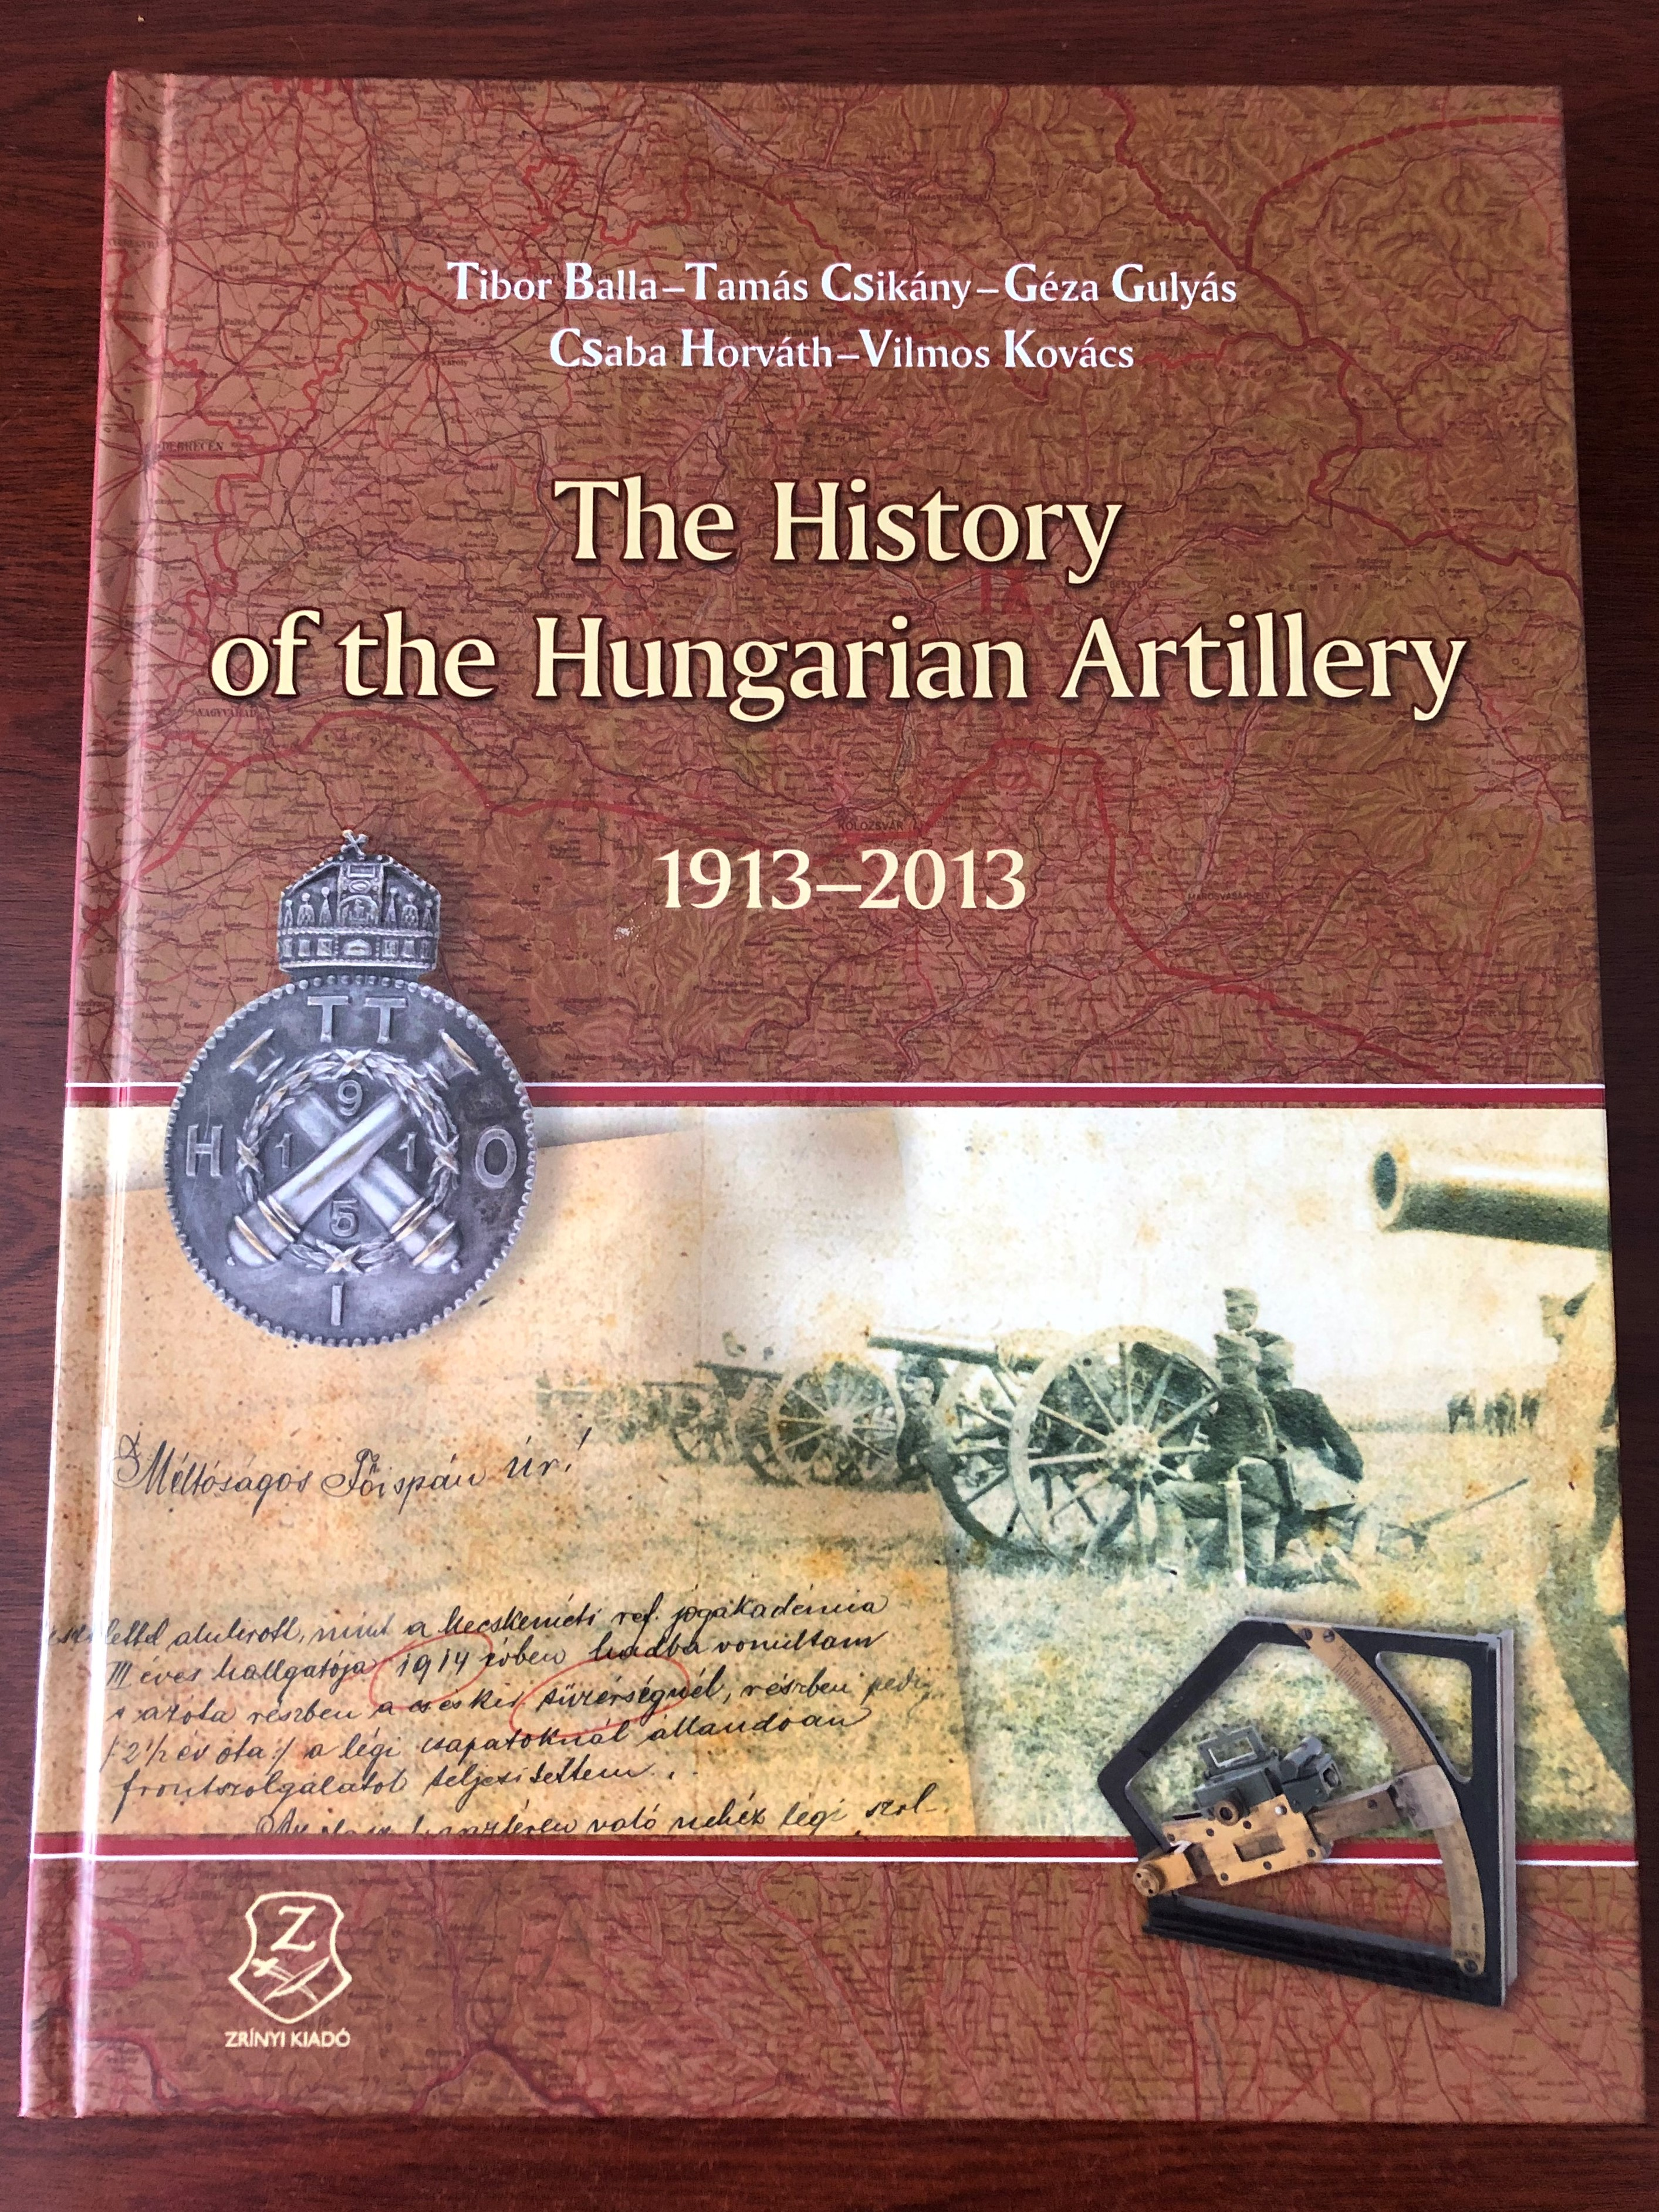 The History of the Hungarian Artillery 1913-2013 1.JPG